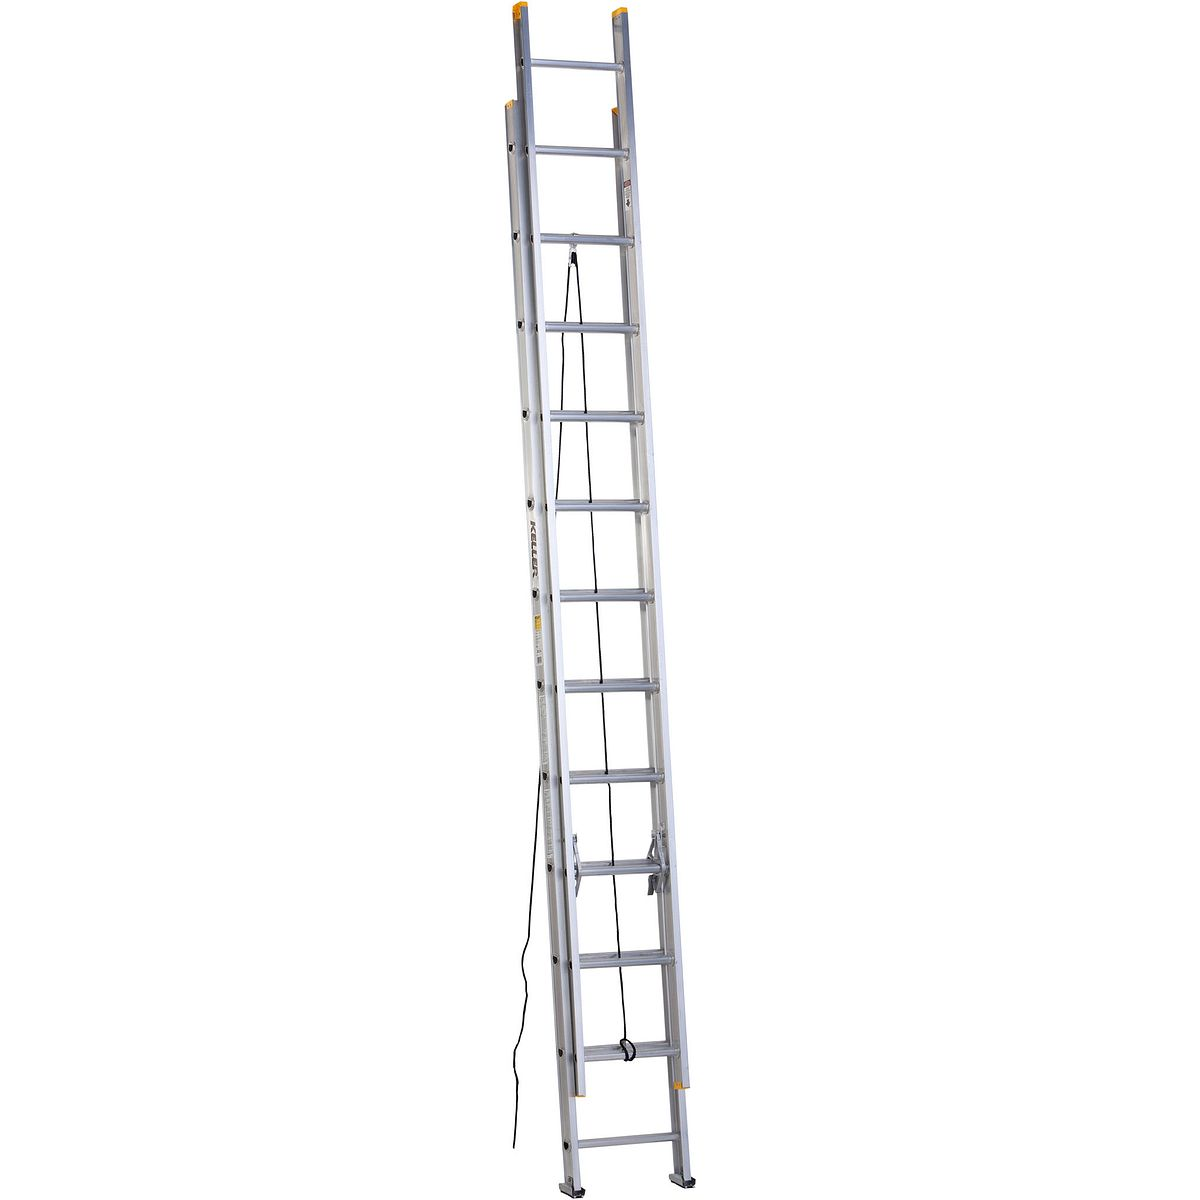 Keller Ladder Repair Parts Popular Design Home Depot